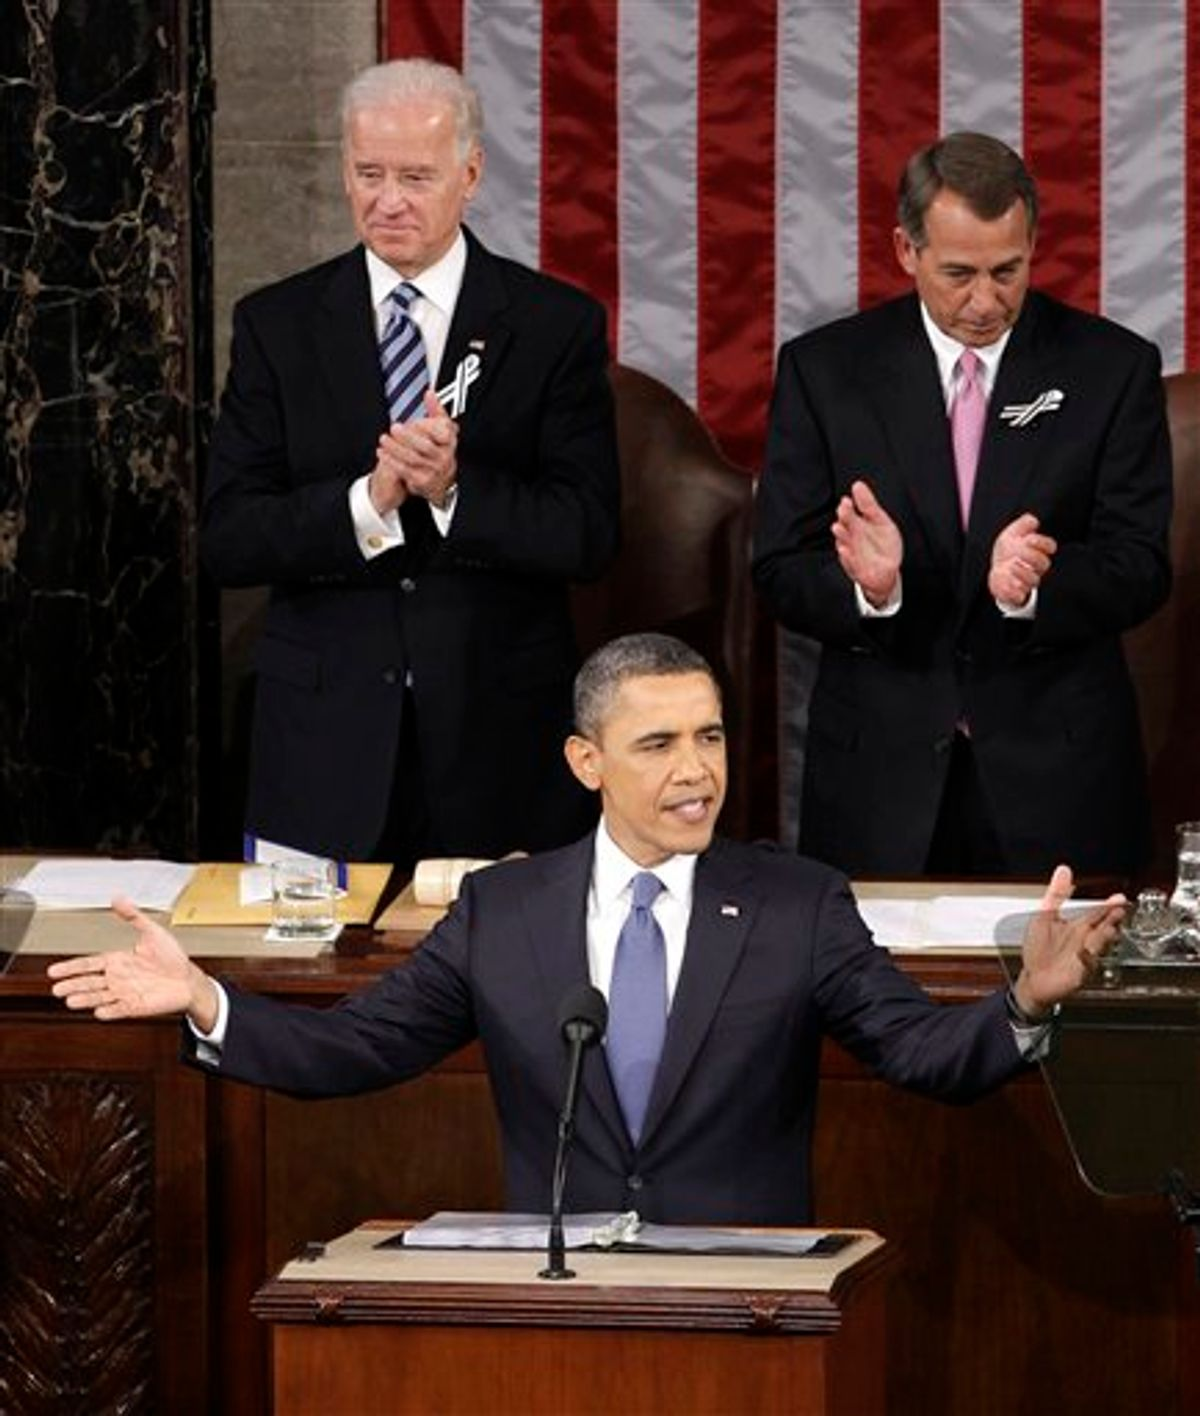 President Barack Obama gestures on Capitol Hill in Washington, Tuesday, Jan. 25, 2011, prior to delivering his State of the Union address in Washington, Tuesday, Jan. 25, 2011. Vice President Joe Biden and House Speaker John Boehner of Ohio applaud at rear. (AP Photo/Charles Dharapak) (AP)